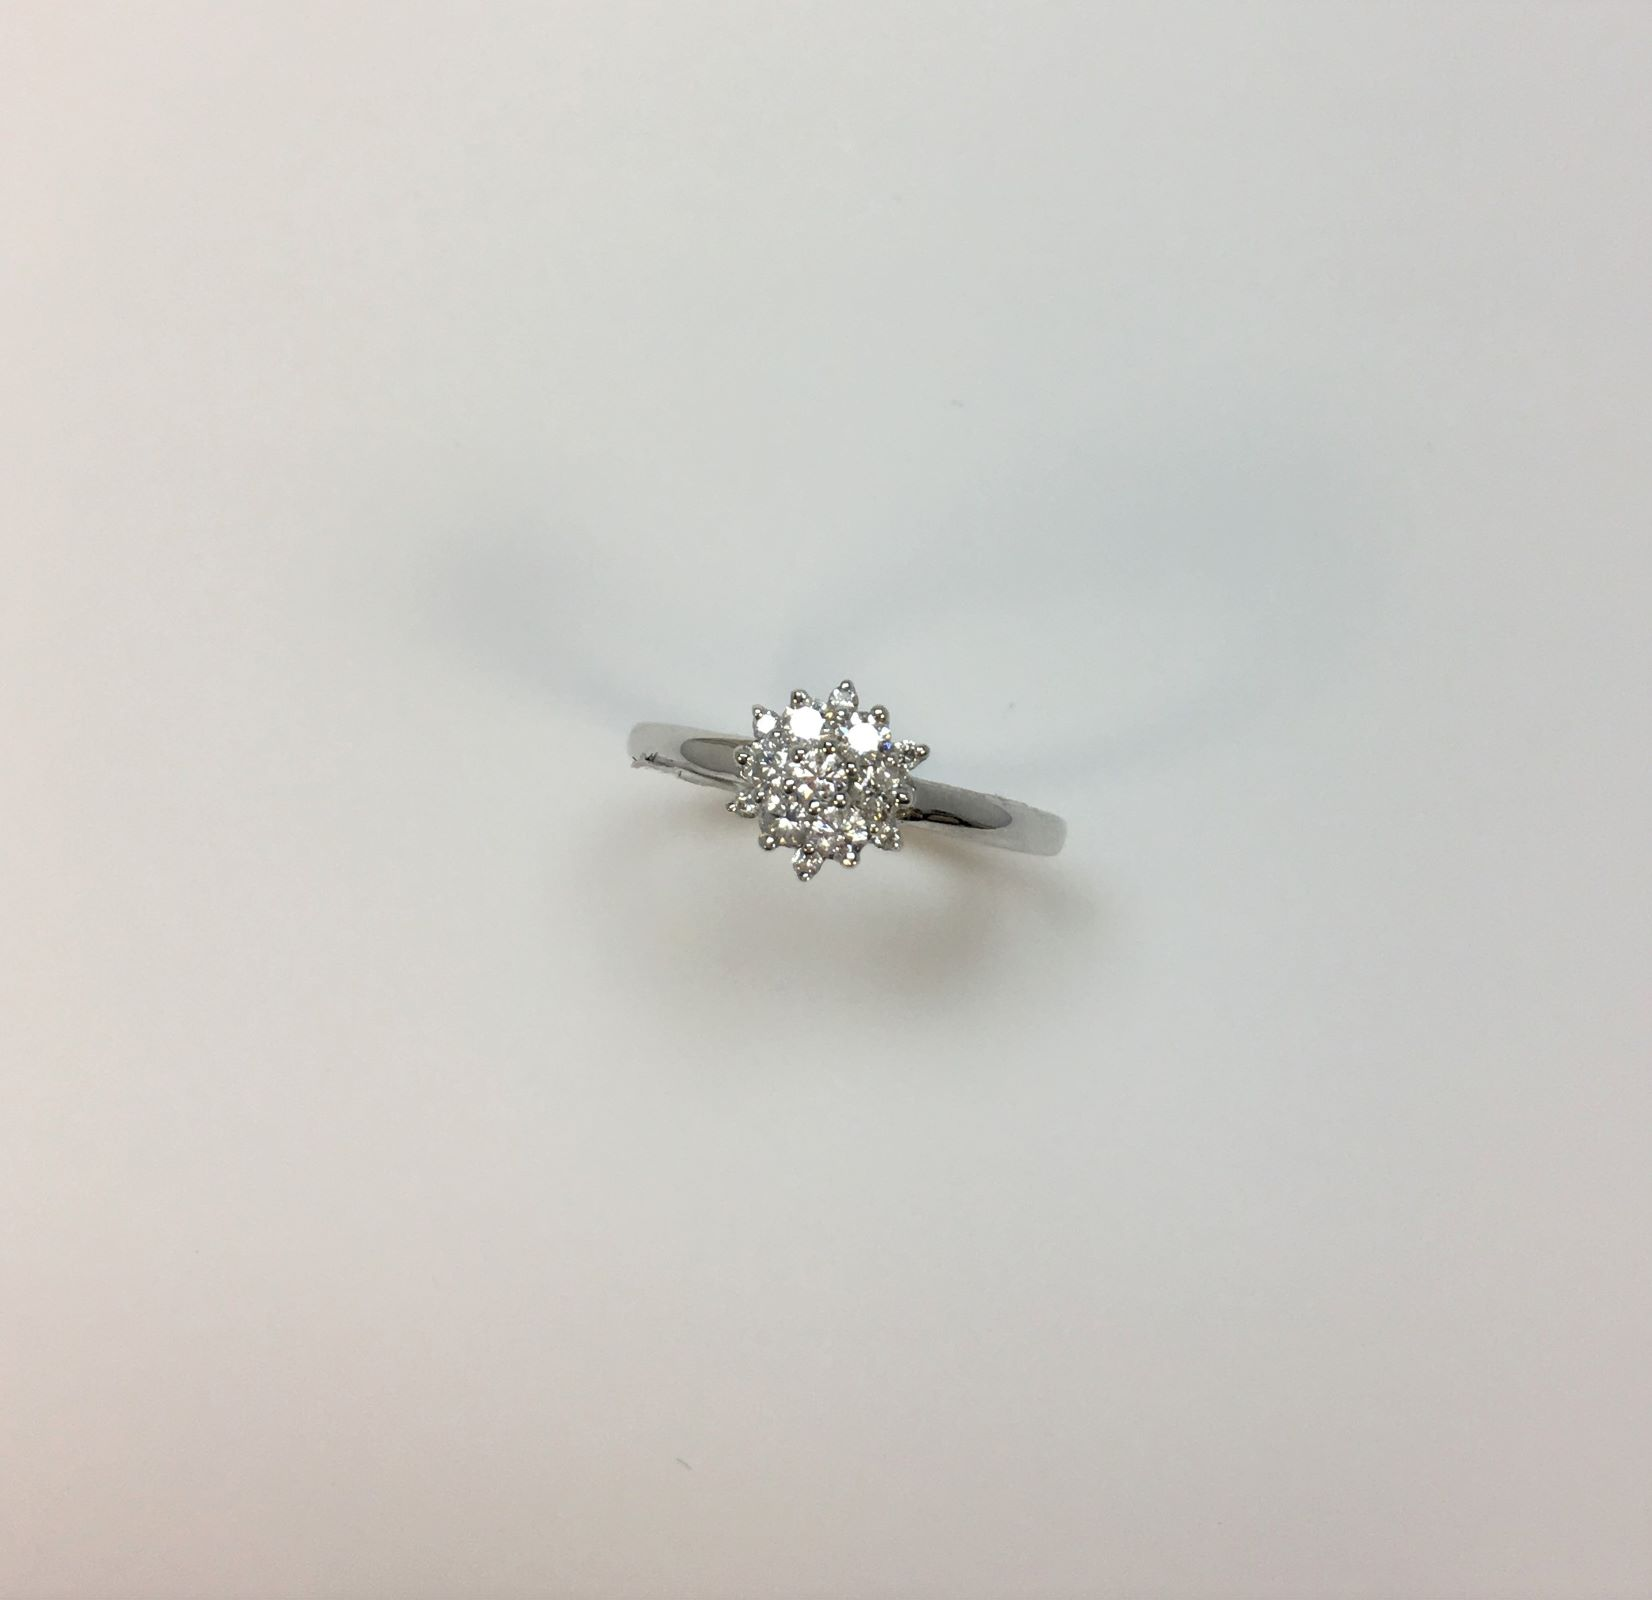 1/3 Carats Total Weight Cluster Diamond Ring